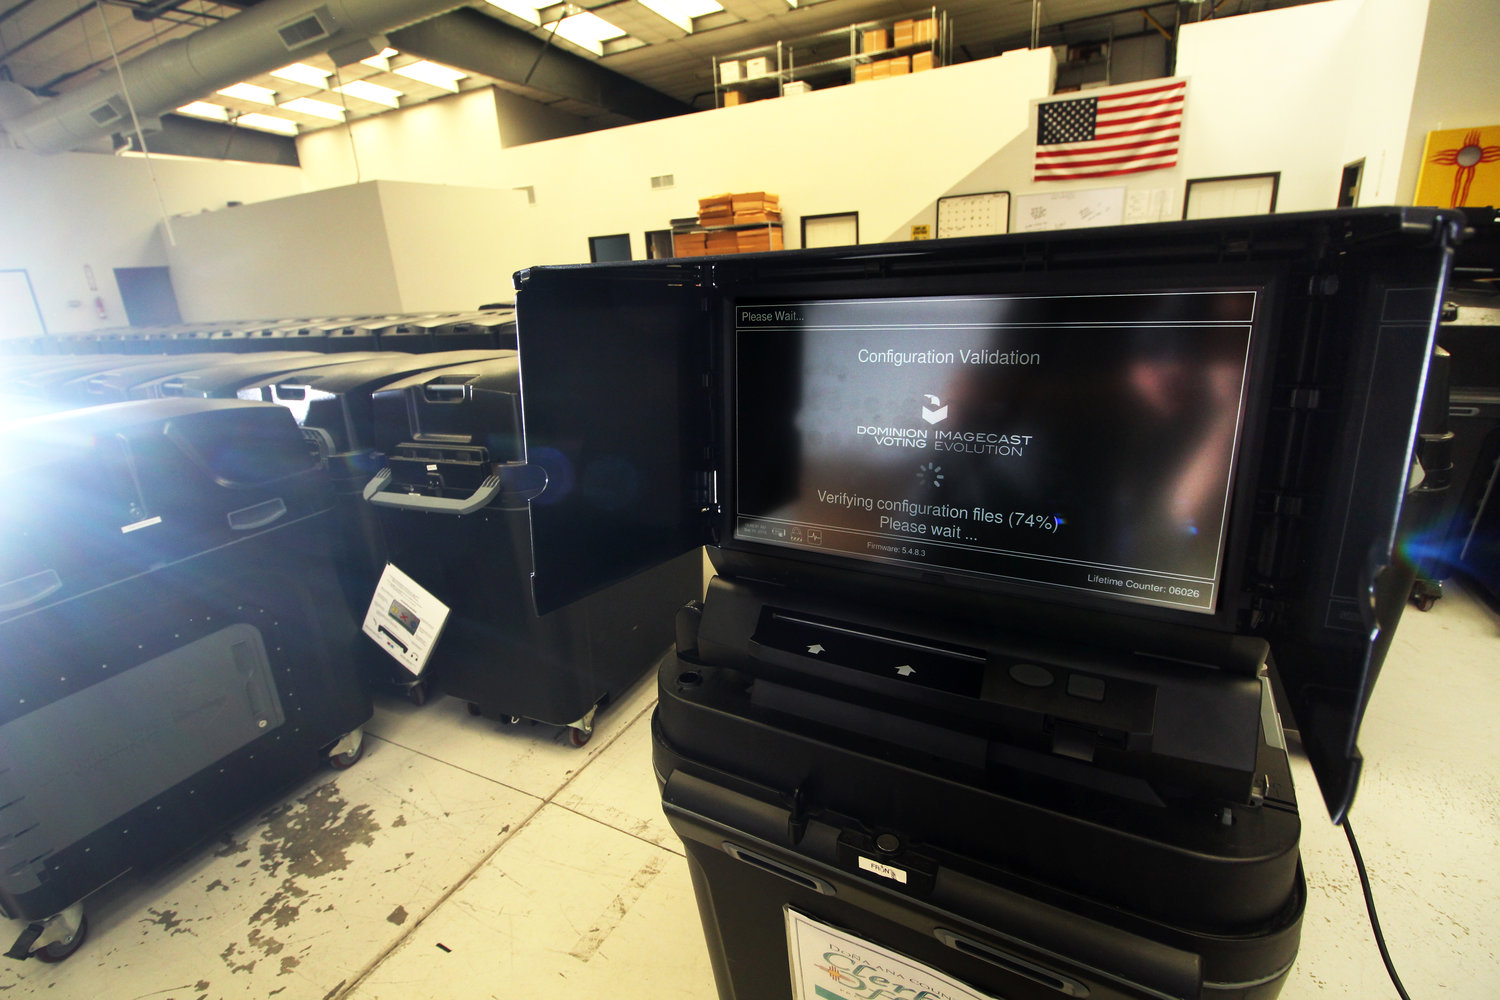 Voting machines await certification in the Doña Ana County Clerk's Bureau of Elections Warehouse.